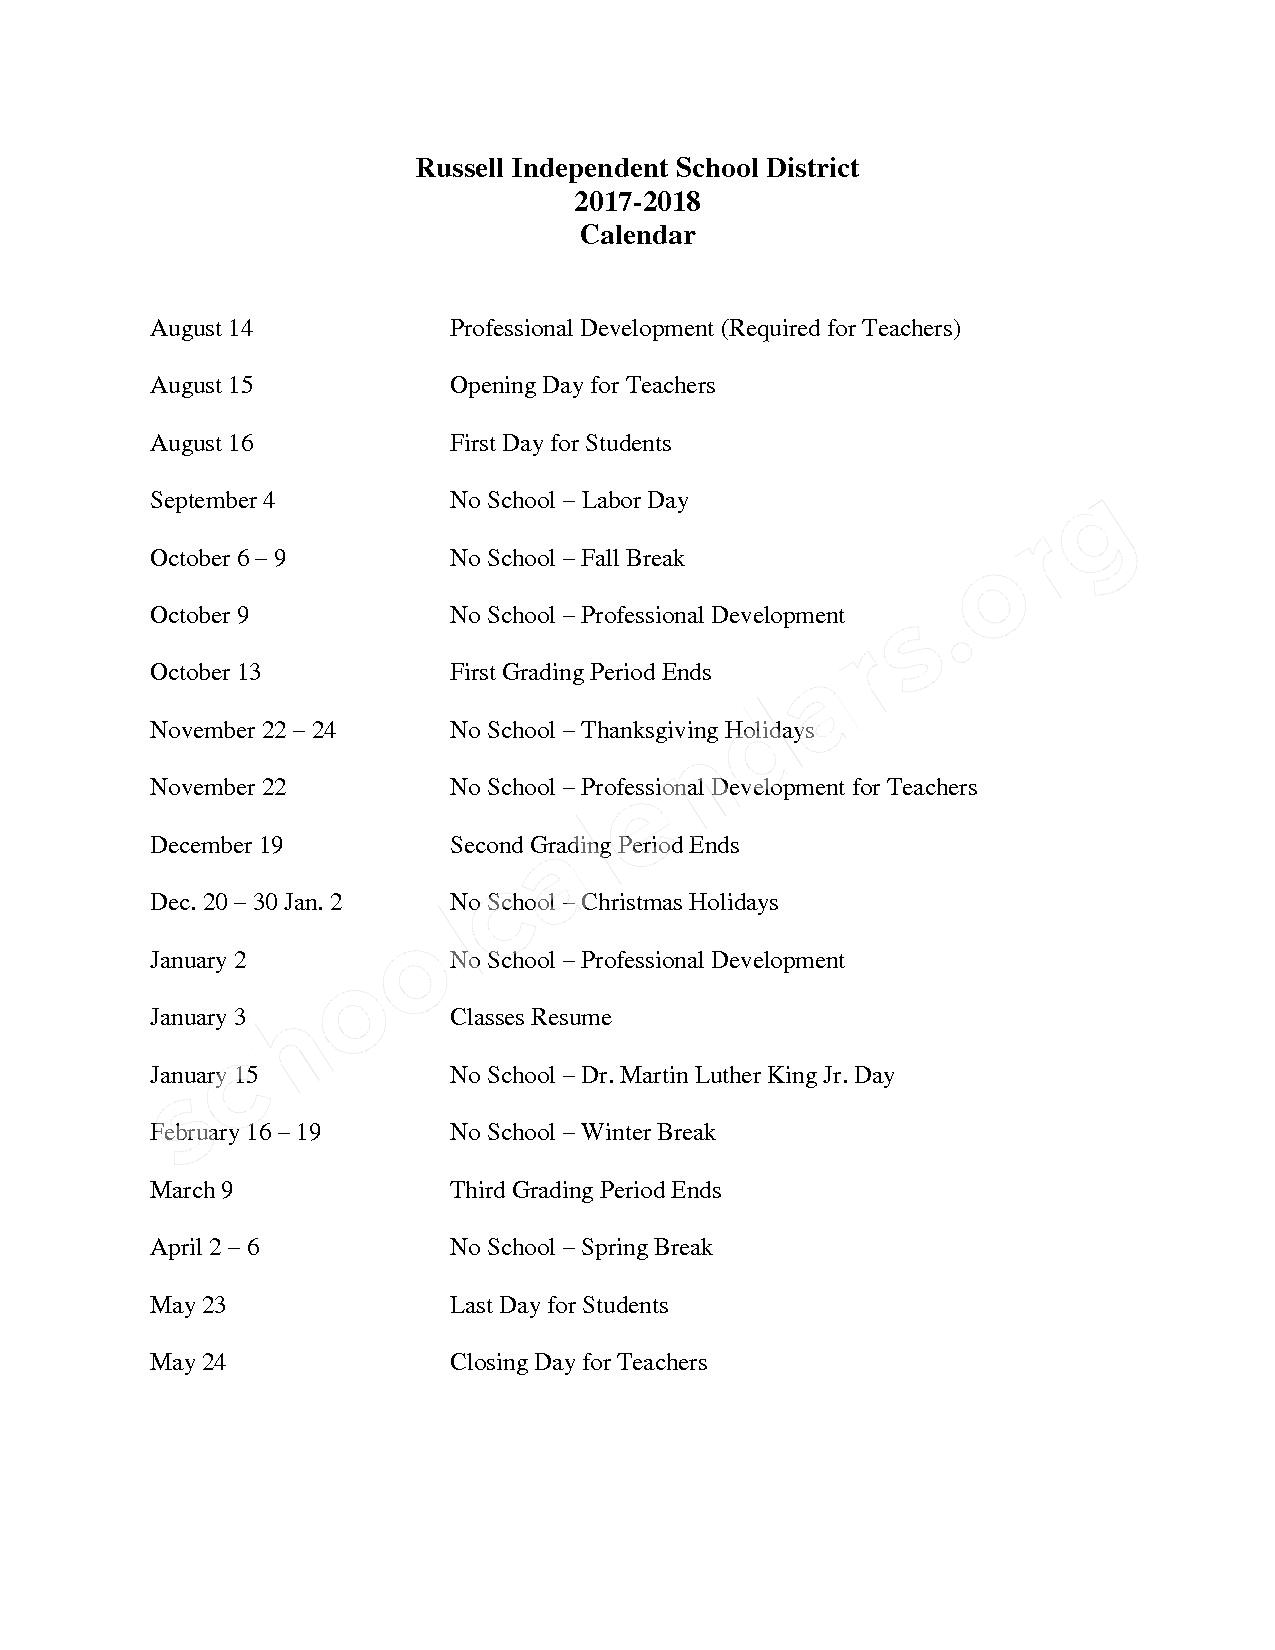 2017 - 2018 School Calendar – Russell Independent School District – page 1